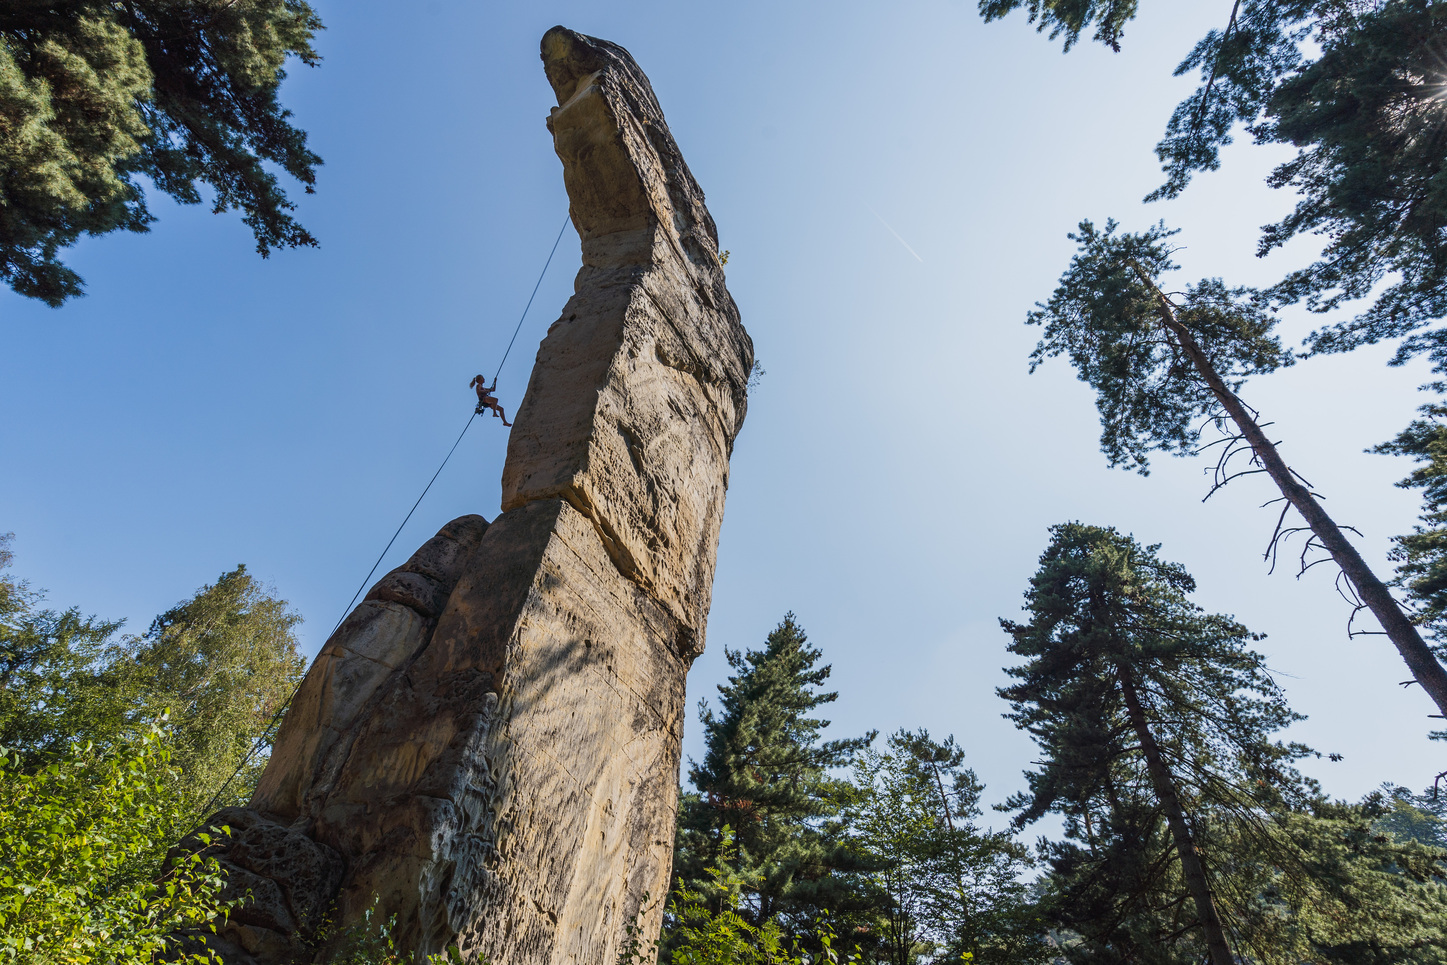 A rock climber rapelling from one of the sandstone towers in the Cech Paradise